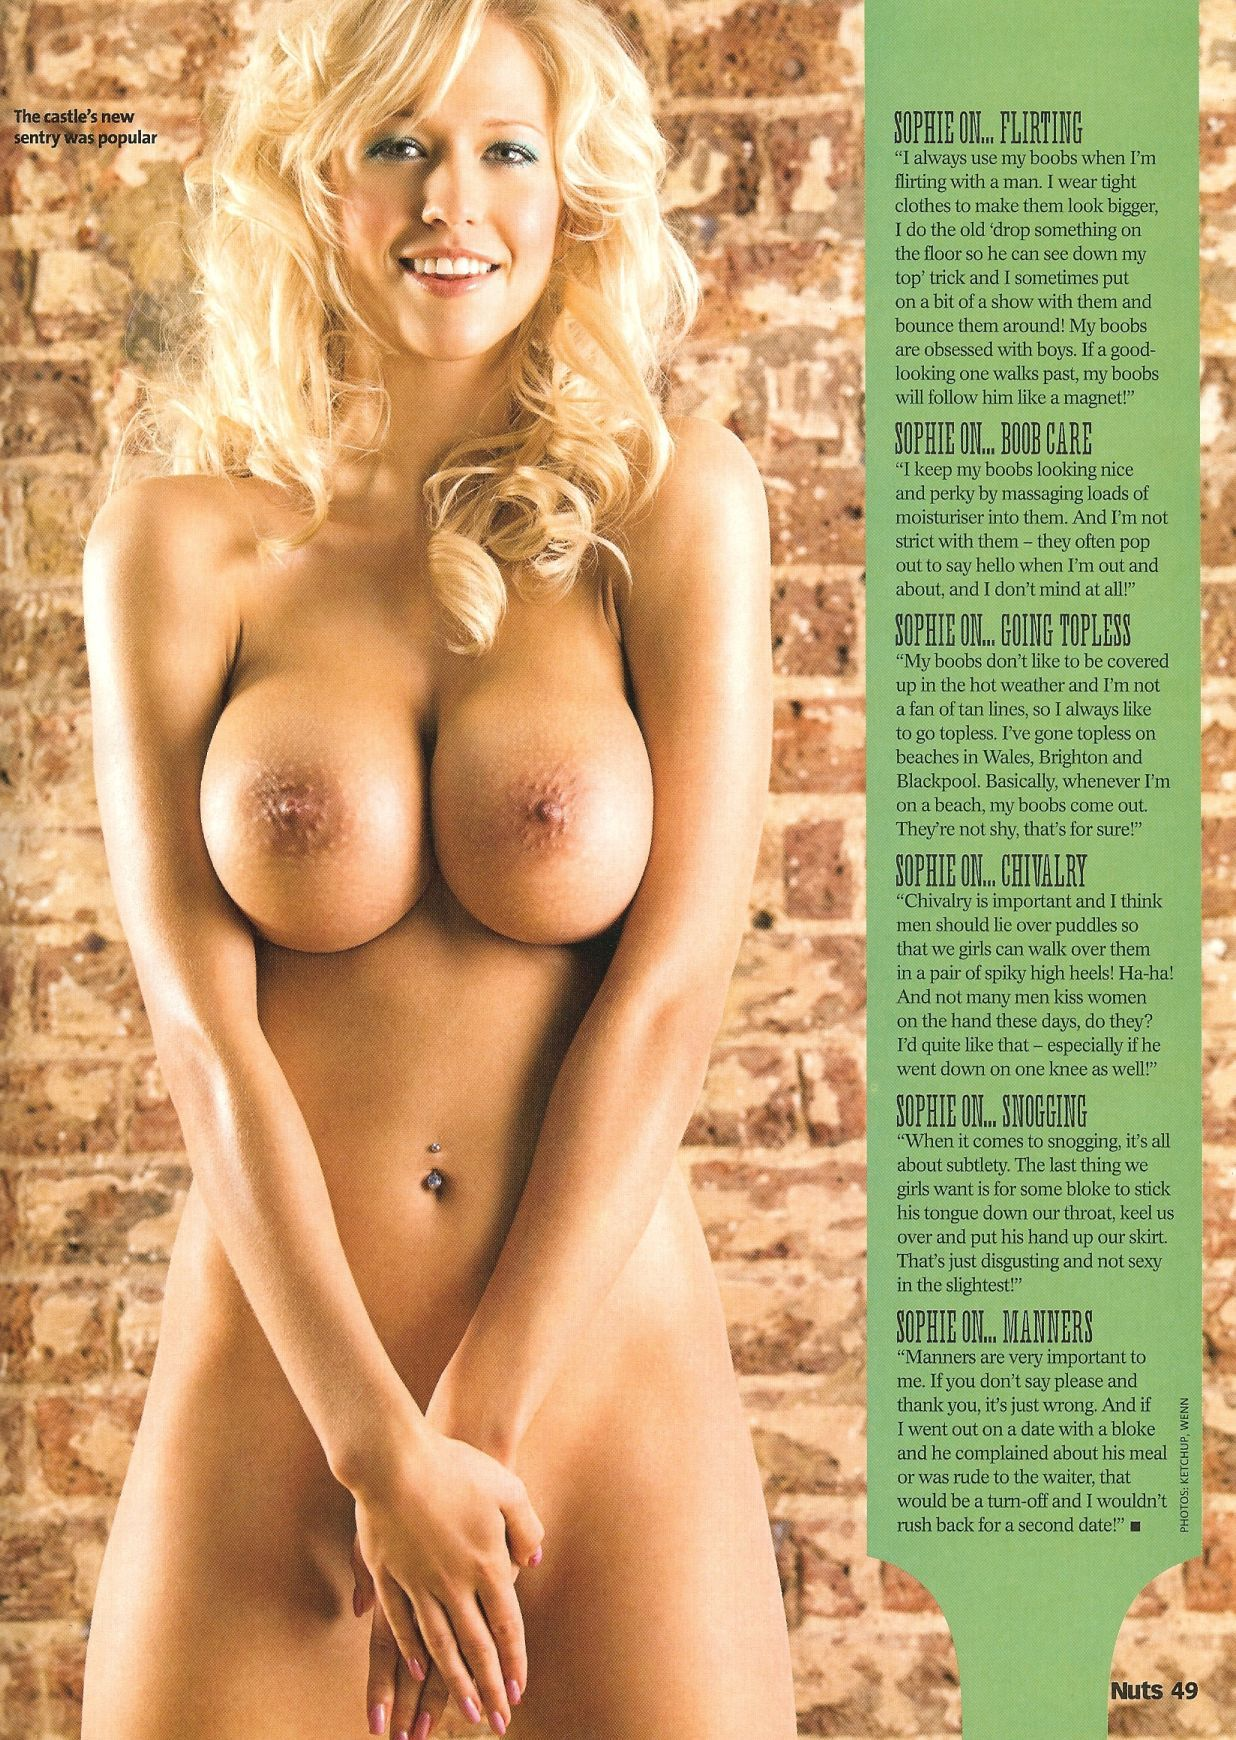 Sophie Reade Boob Size Pretty 98524-sophie-reade-topless-nuts-scans-june-2009-41 | june